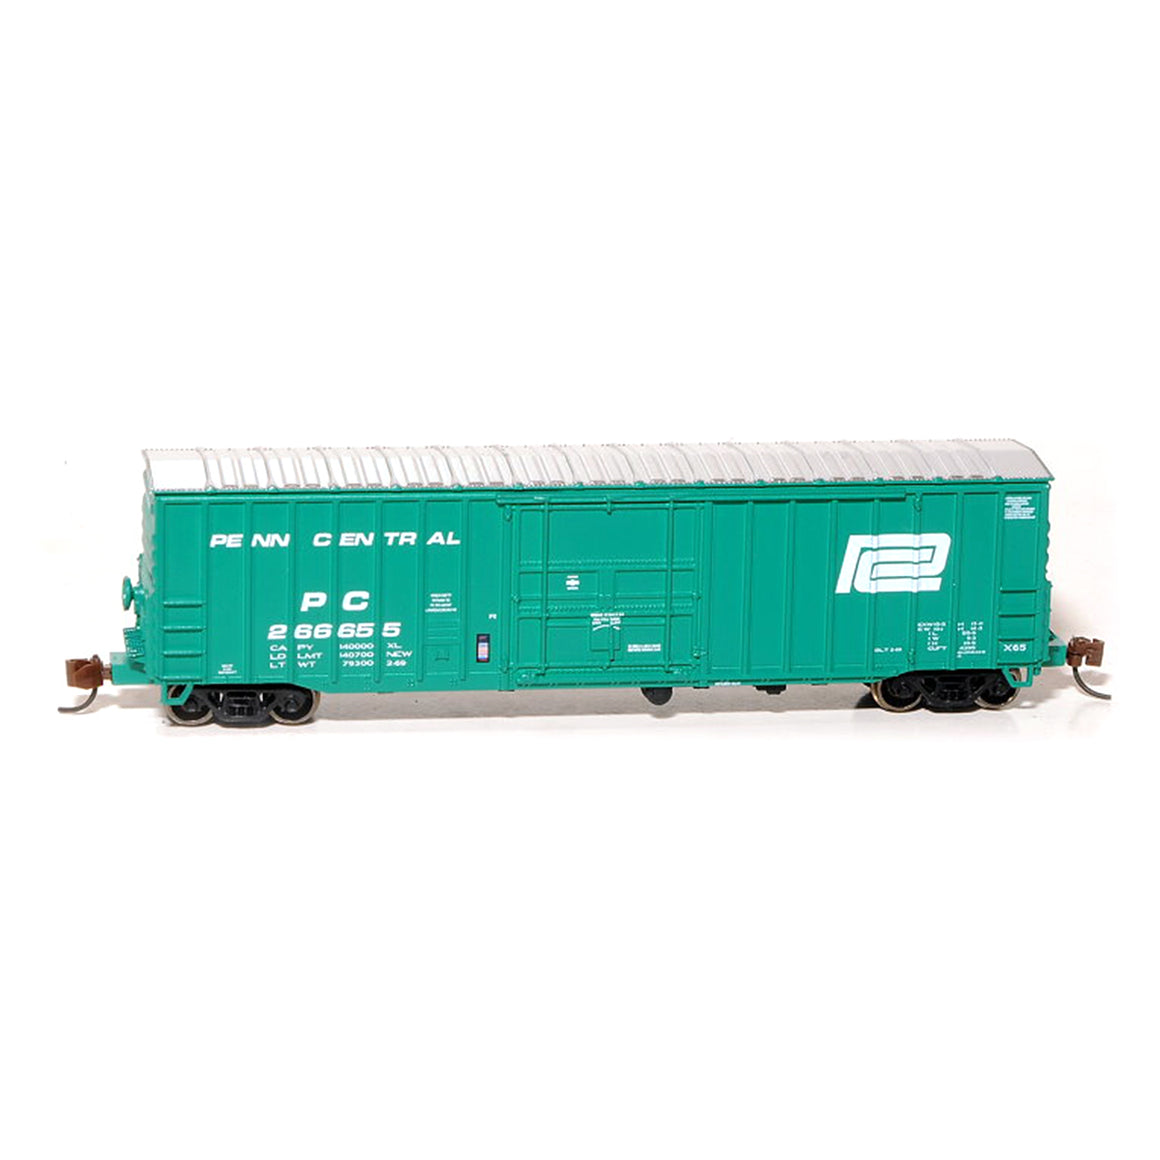 N Scale: Despatch Shops 50' Boxcar - Class X65 - Penn Central - Deepwater Green